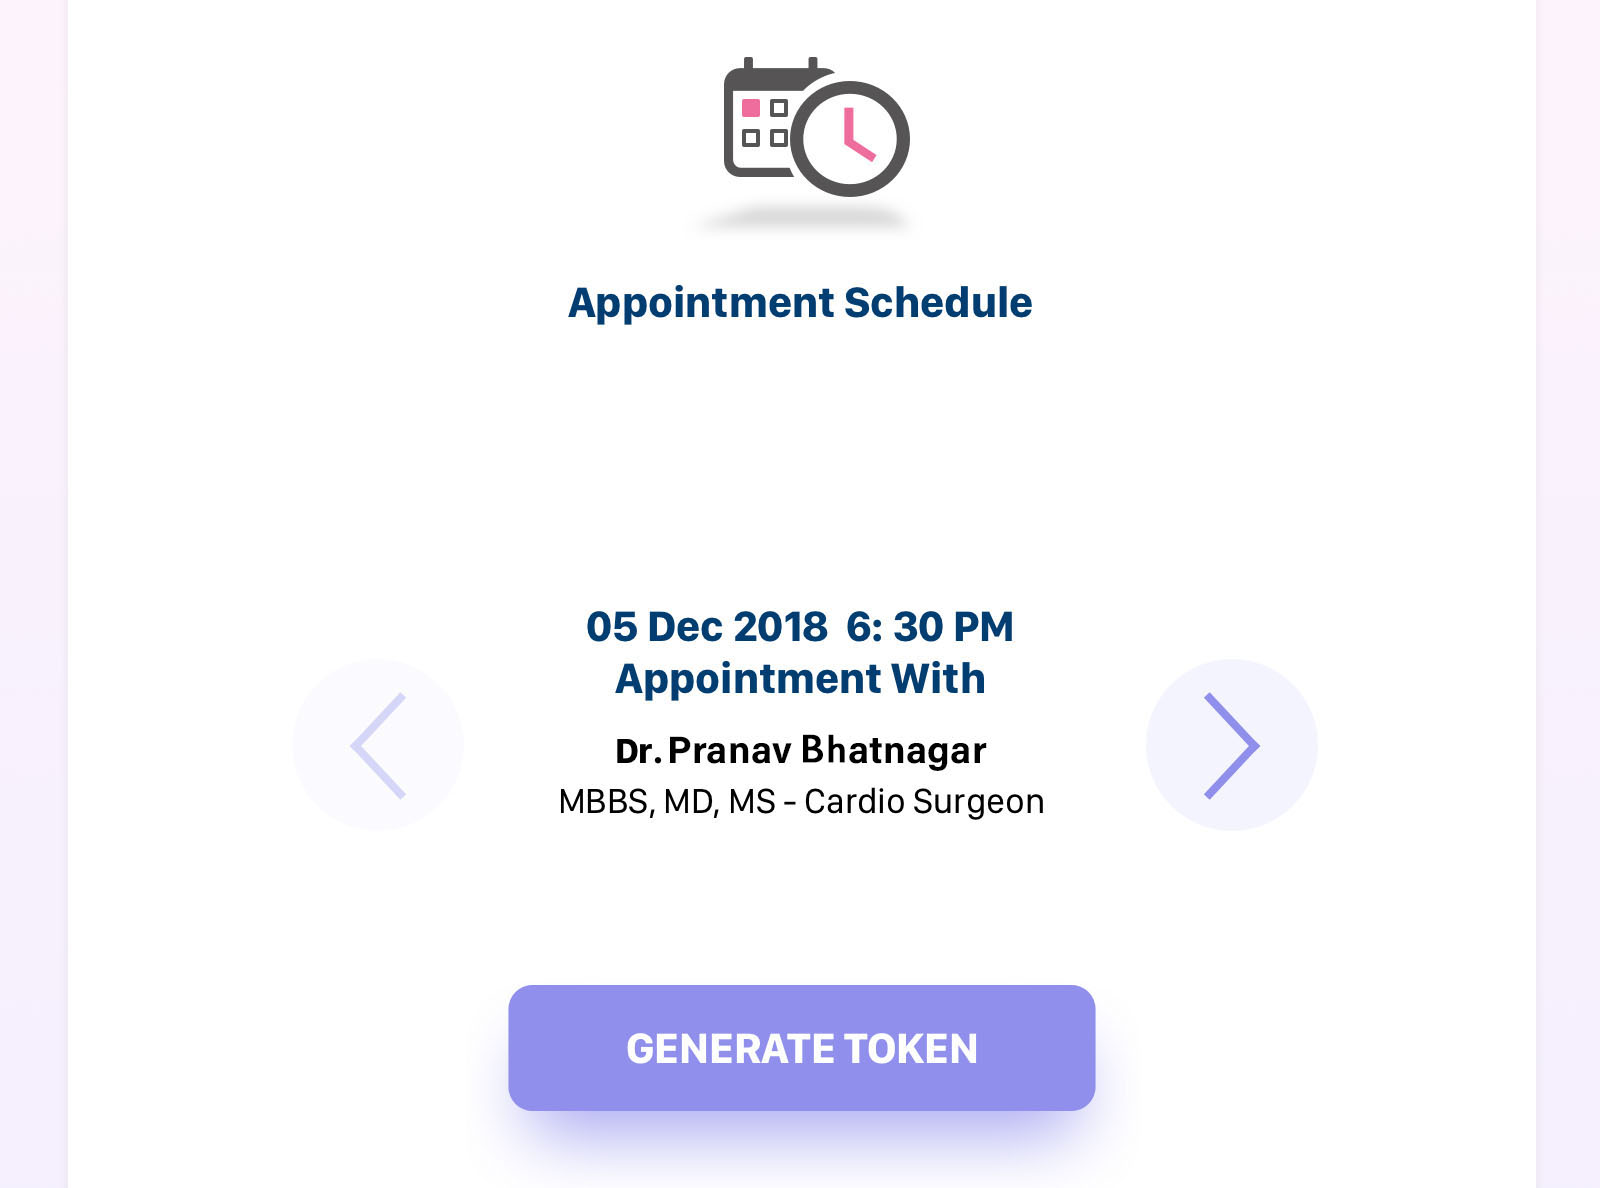 Generate Appointment Token